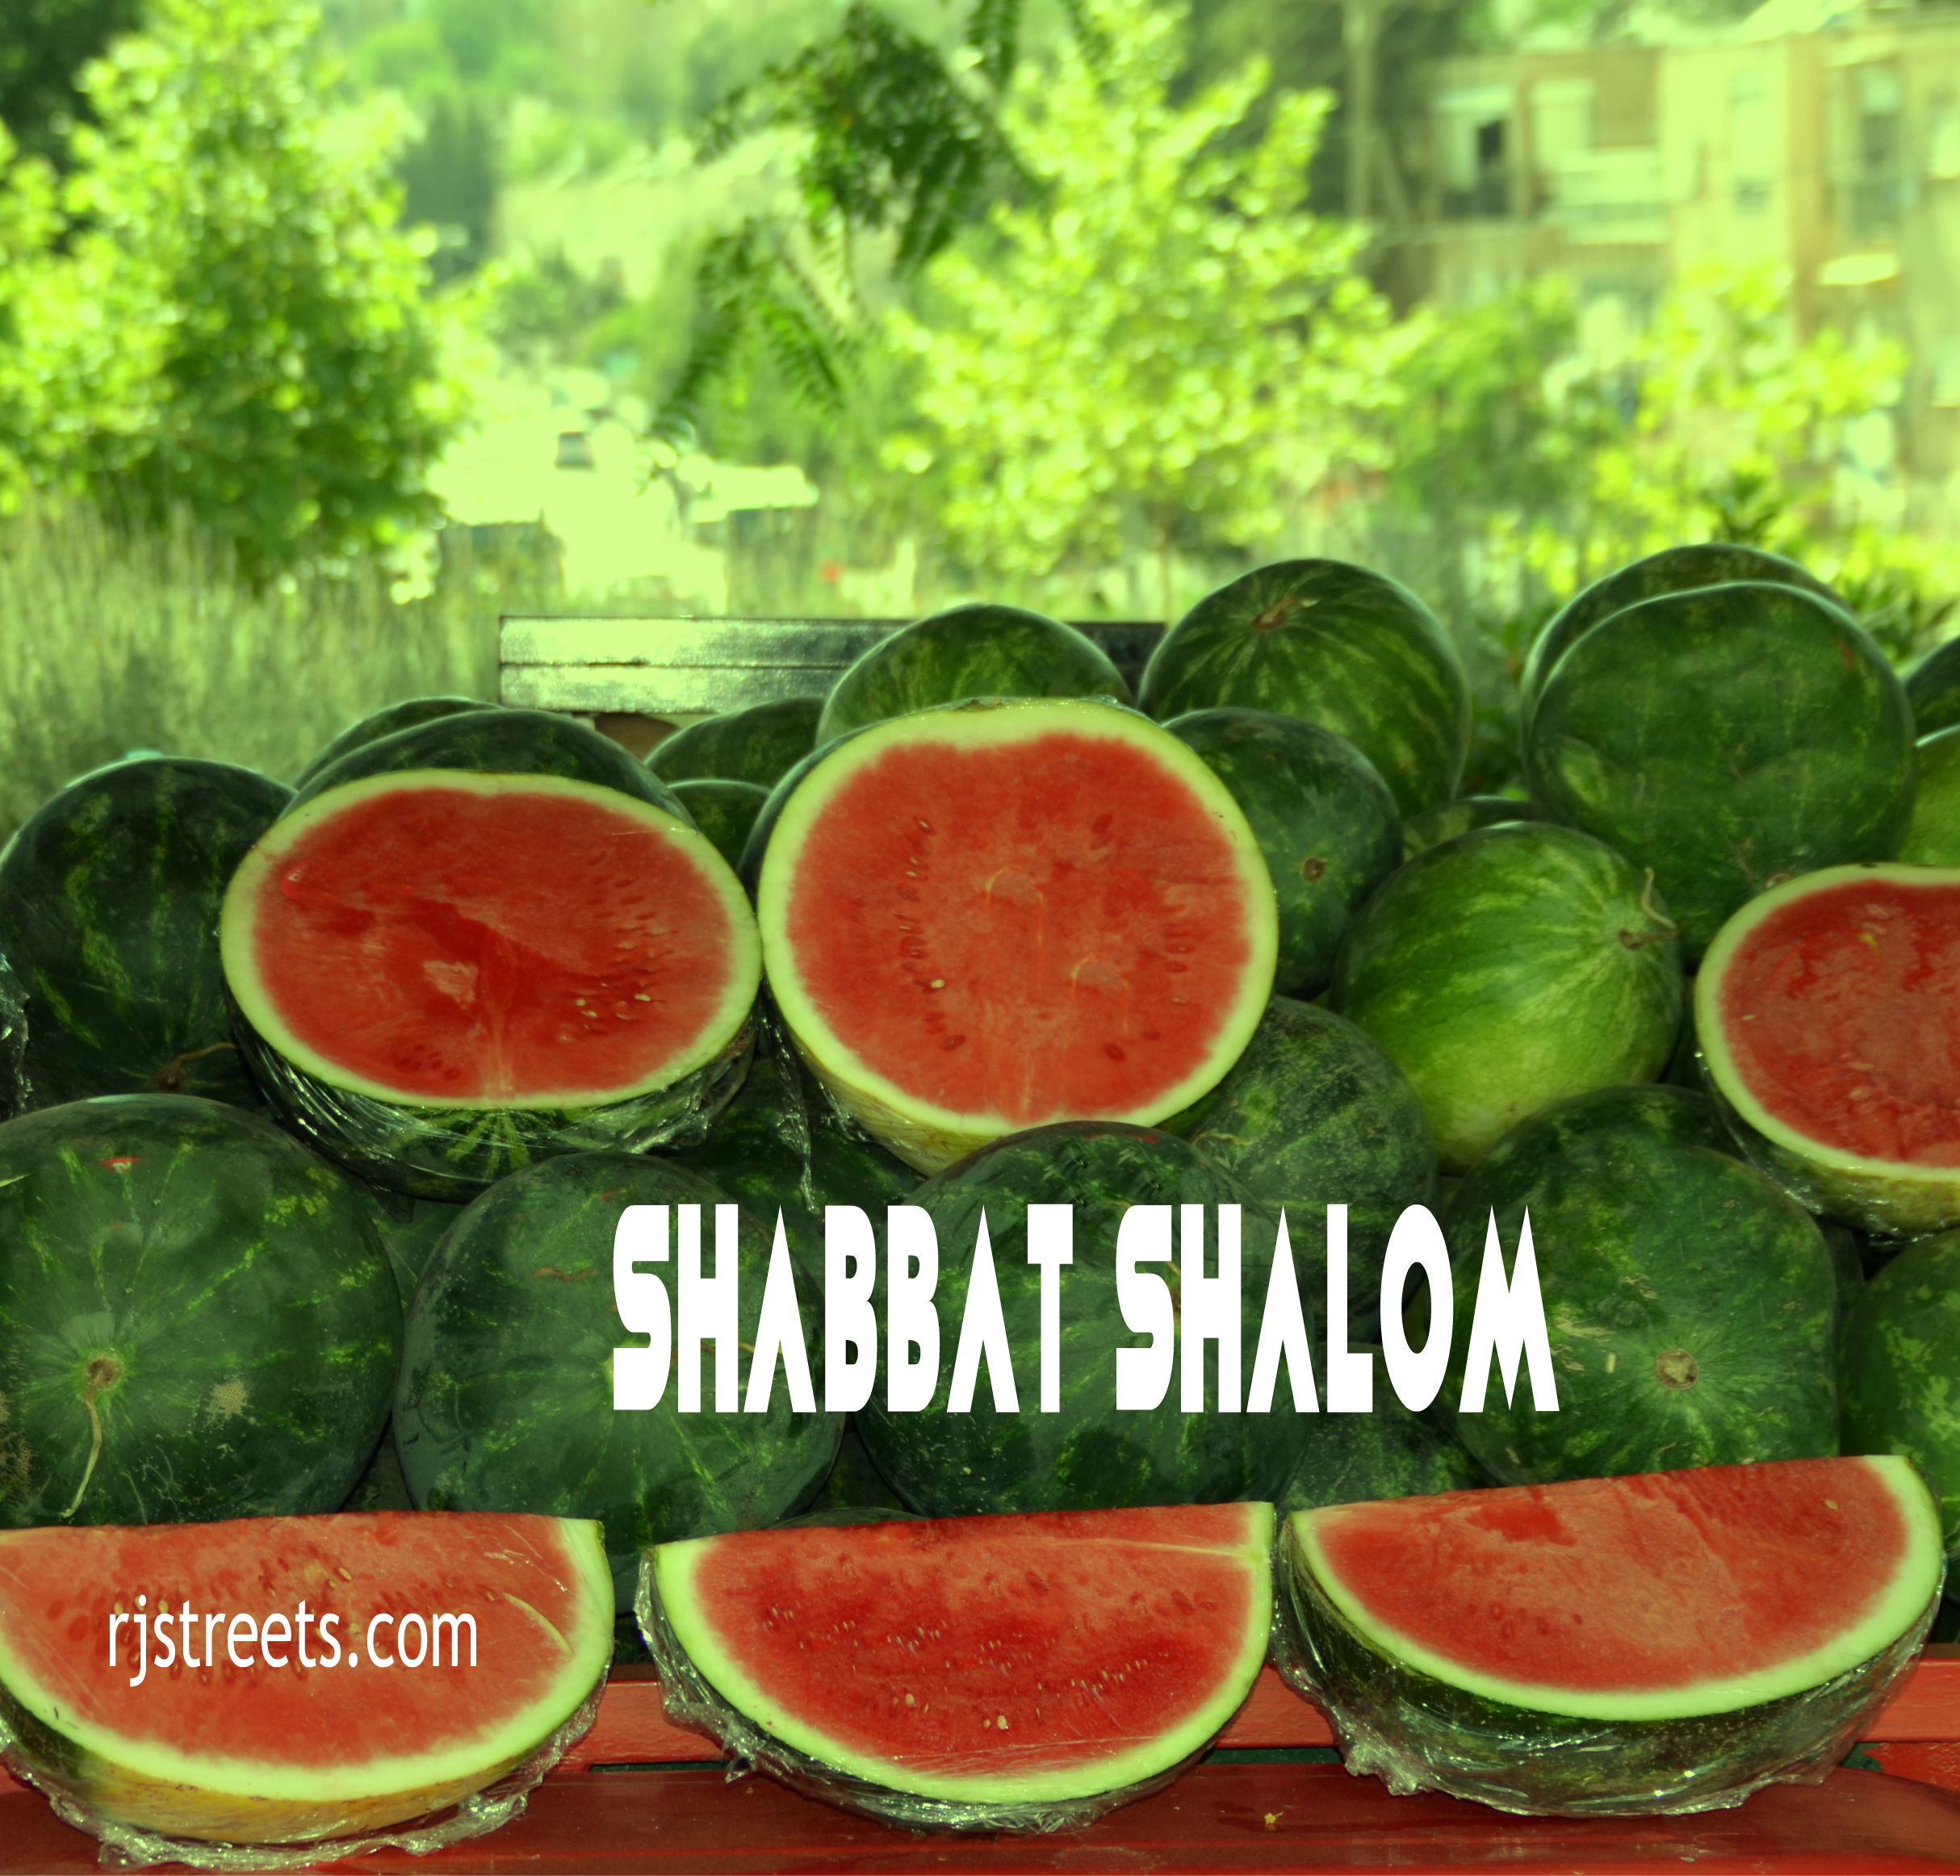 Shabbat shalom watermelon for summer theme poster